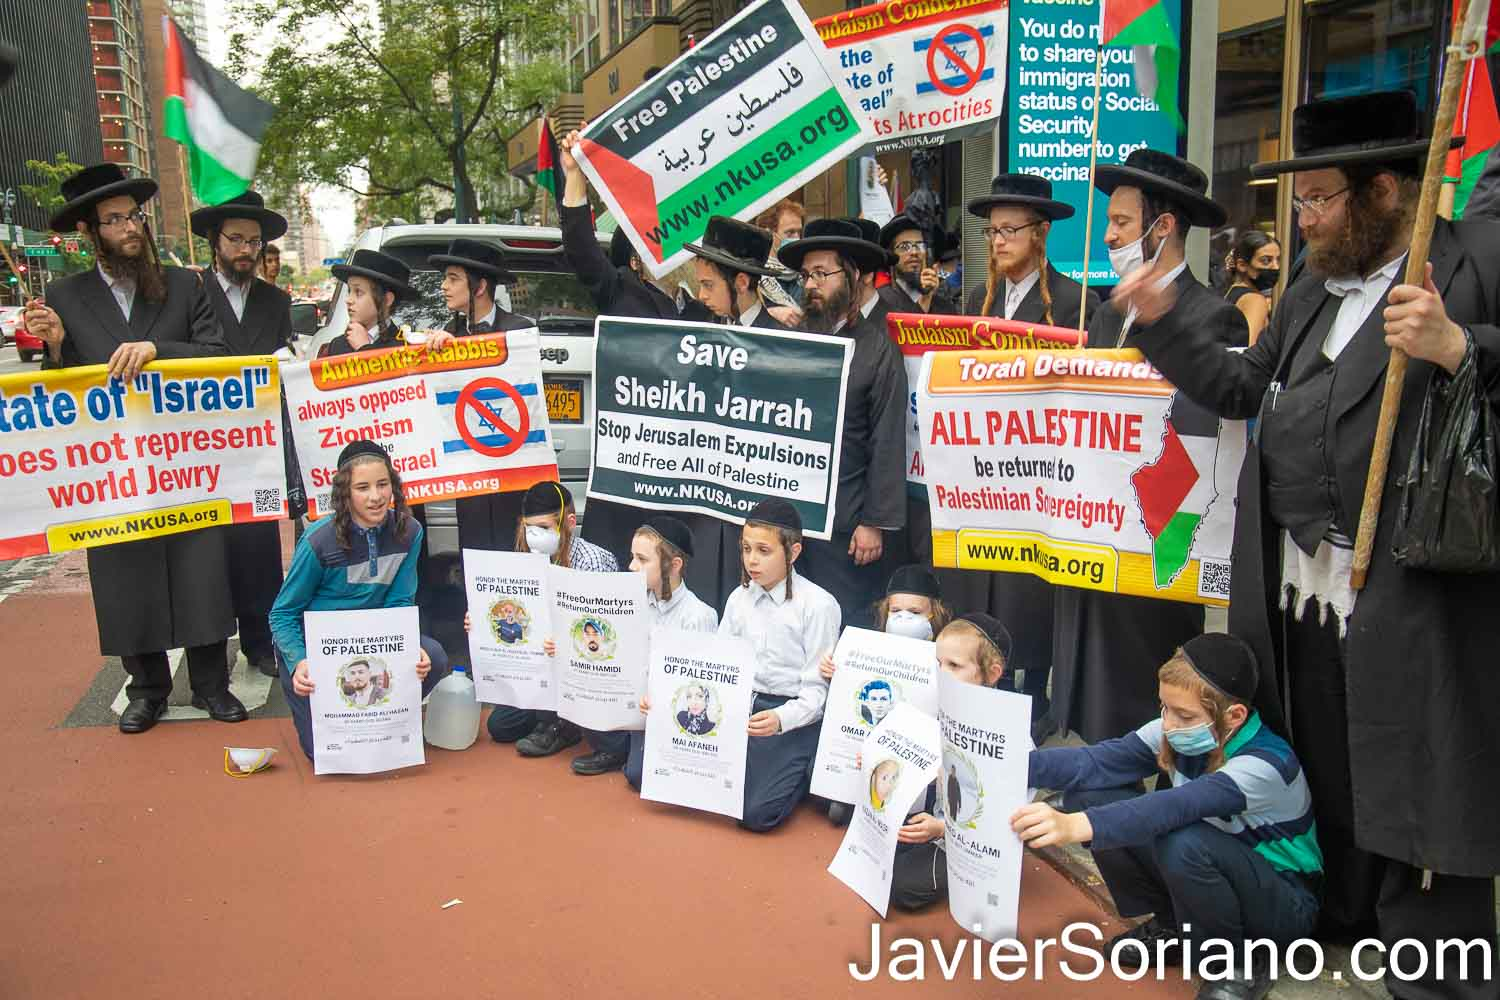 """Sunday, August 29, 2021. Manhattan, New York City – The organization Within Our Lifetime (WOL) held a demonstration inside the Grand Central Terminal. After the rally, they marched to the Israeli consulate in the same borough of Manhattan, in New York City. WOL called the demonstration: """"FREE OUR MARTYRS: DIE-IN & SPEAK OUT FOR PALESTINE."""" Protesters demanded """"the return of Palestinian martyrs bodies who are being held hostage by the Zionist (Israel) entity.""""   THIS PHOTO: Jews of the organization Neturei Karta. Some of their banners read, """"Authentic Rabbis always opposed Zionism and the state of Israel. www.nkusa.org"""" and """"Torah demands ALL PALESTINE be returned to Palestinian sovereignty. www.nkusa.org""""   Photo by Javier Soriano/www.JavierSoriano.com"""